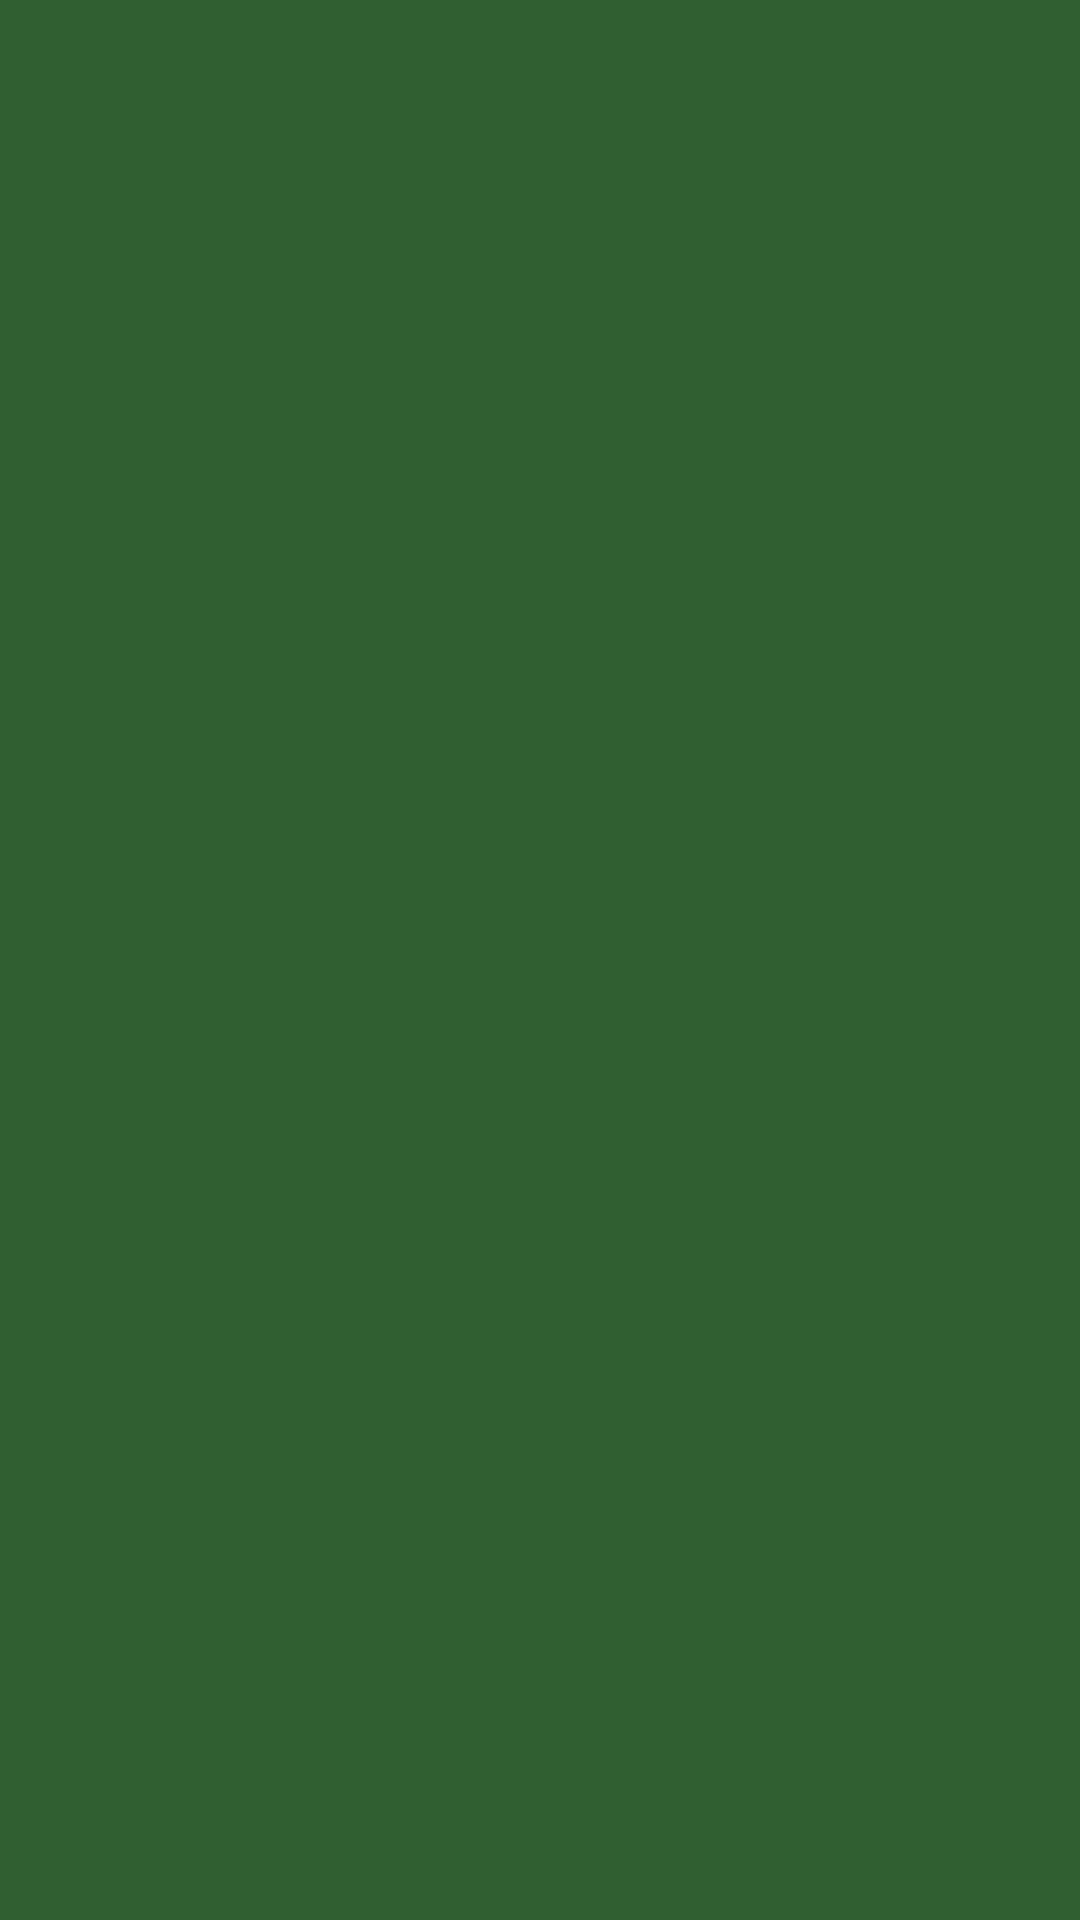 1080x1920 Mughal Green Solid Color Background